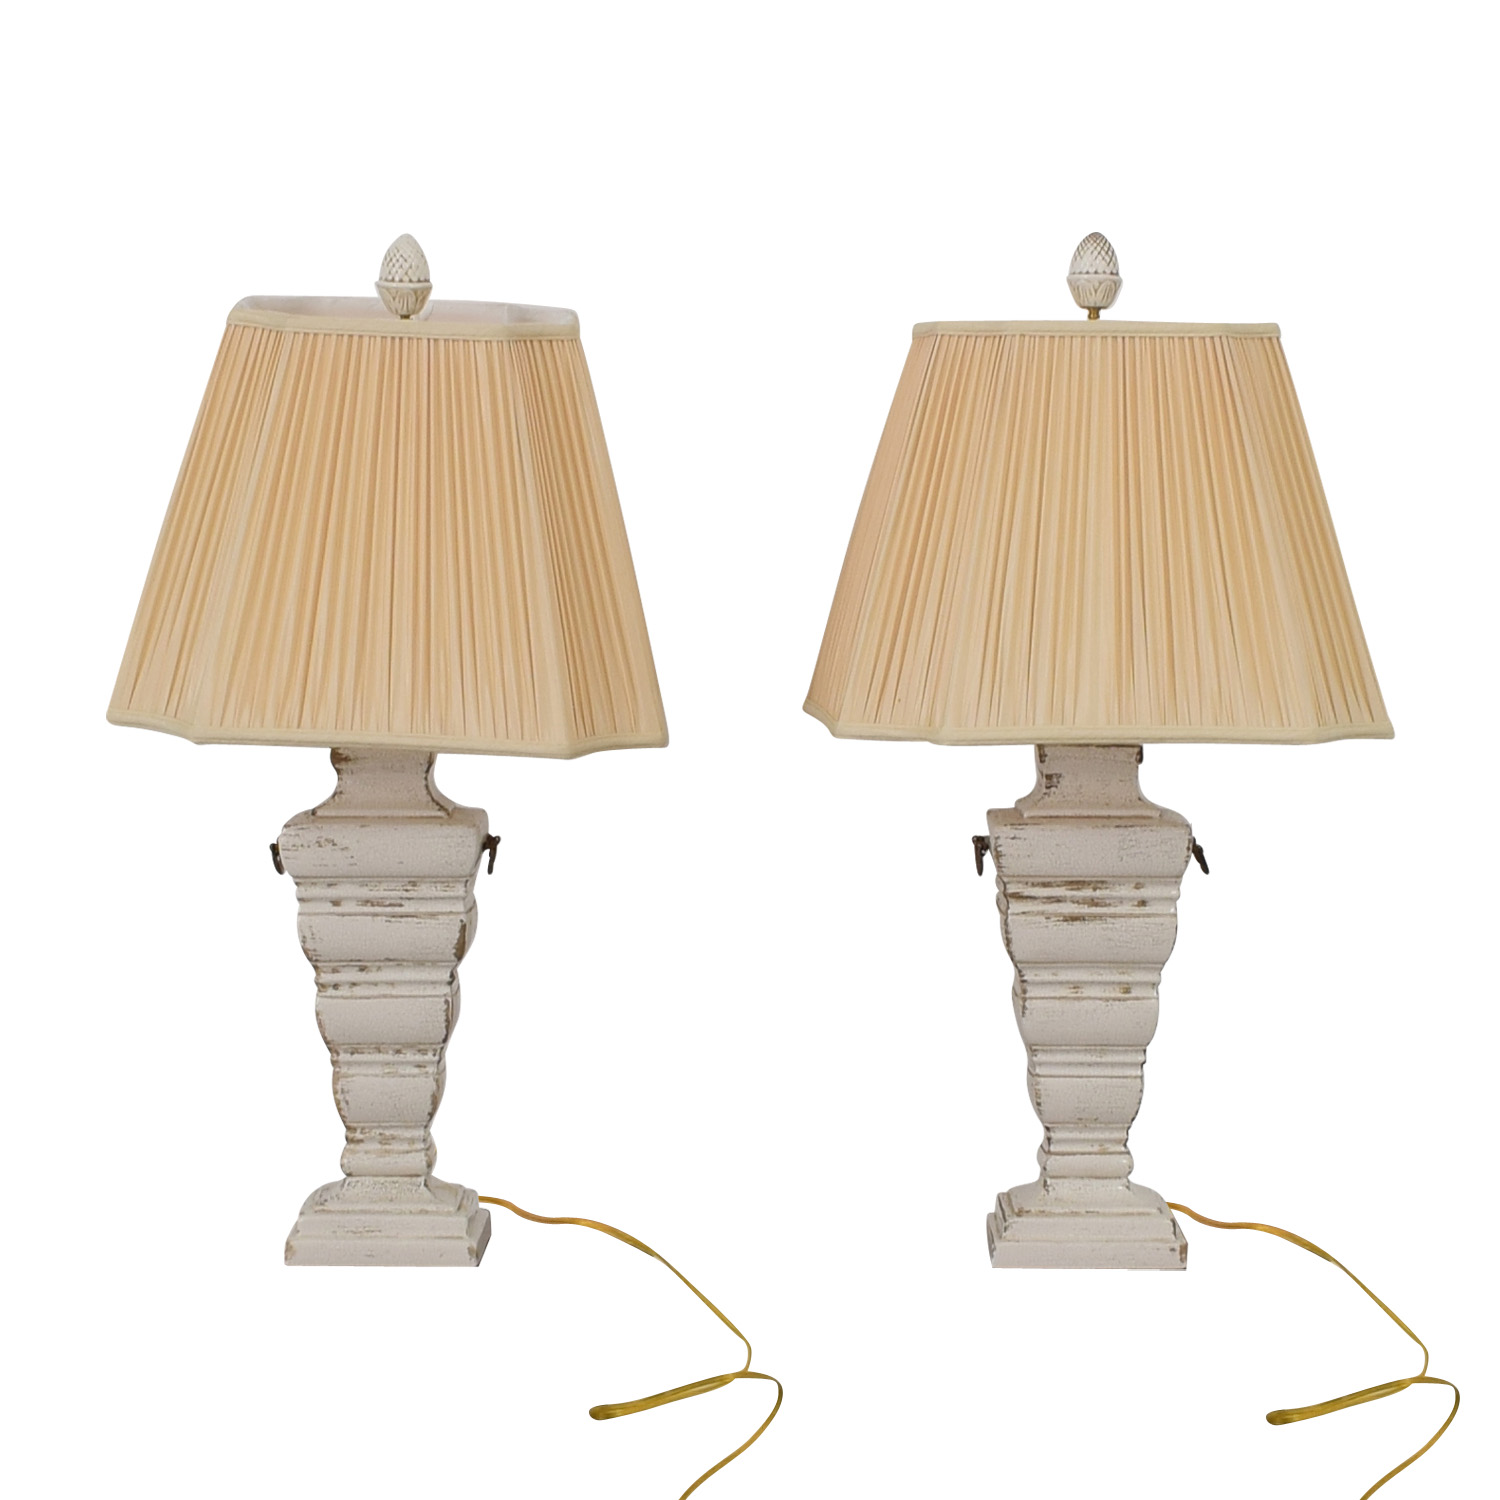 The Bradburn Gallery Cream Table Lamps sale